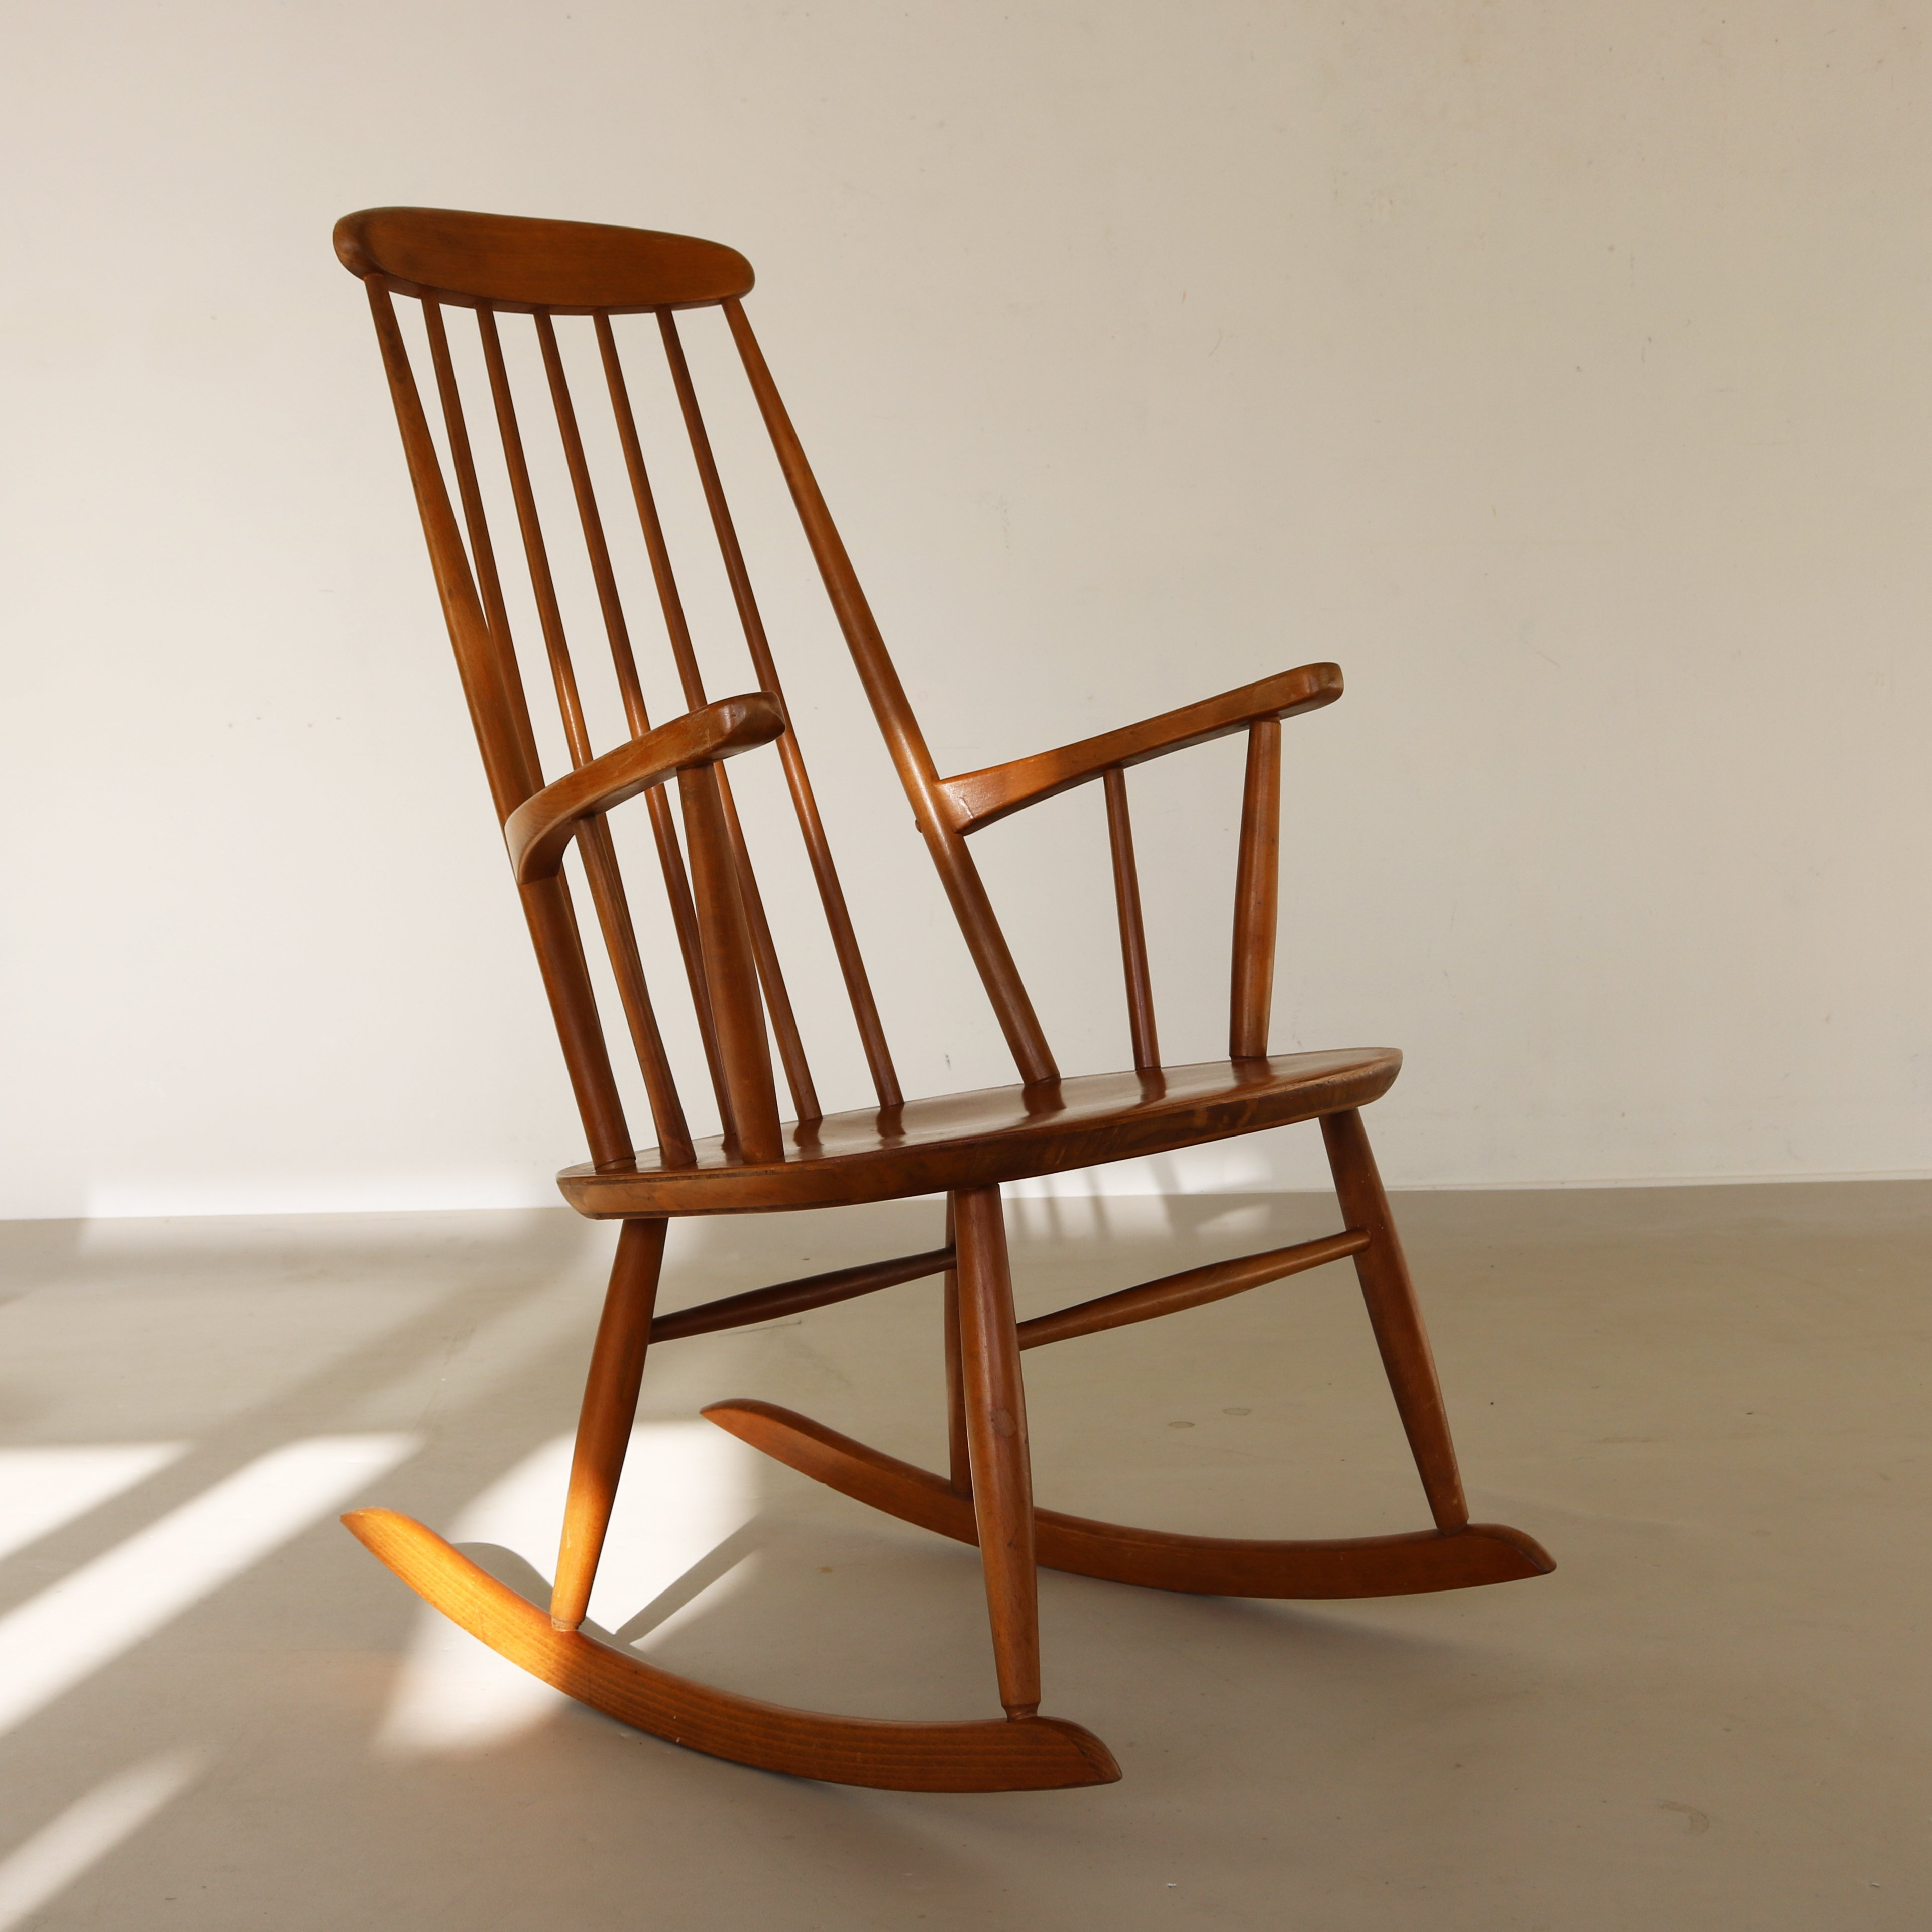 Scandinavian rocking chair, 1960s